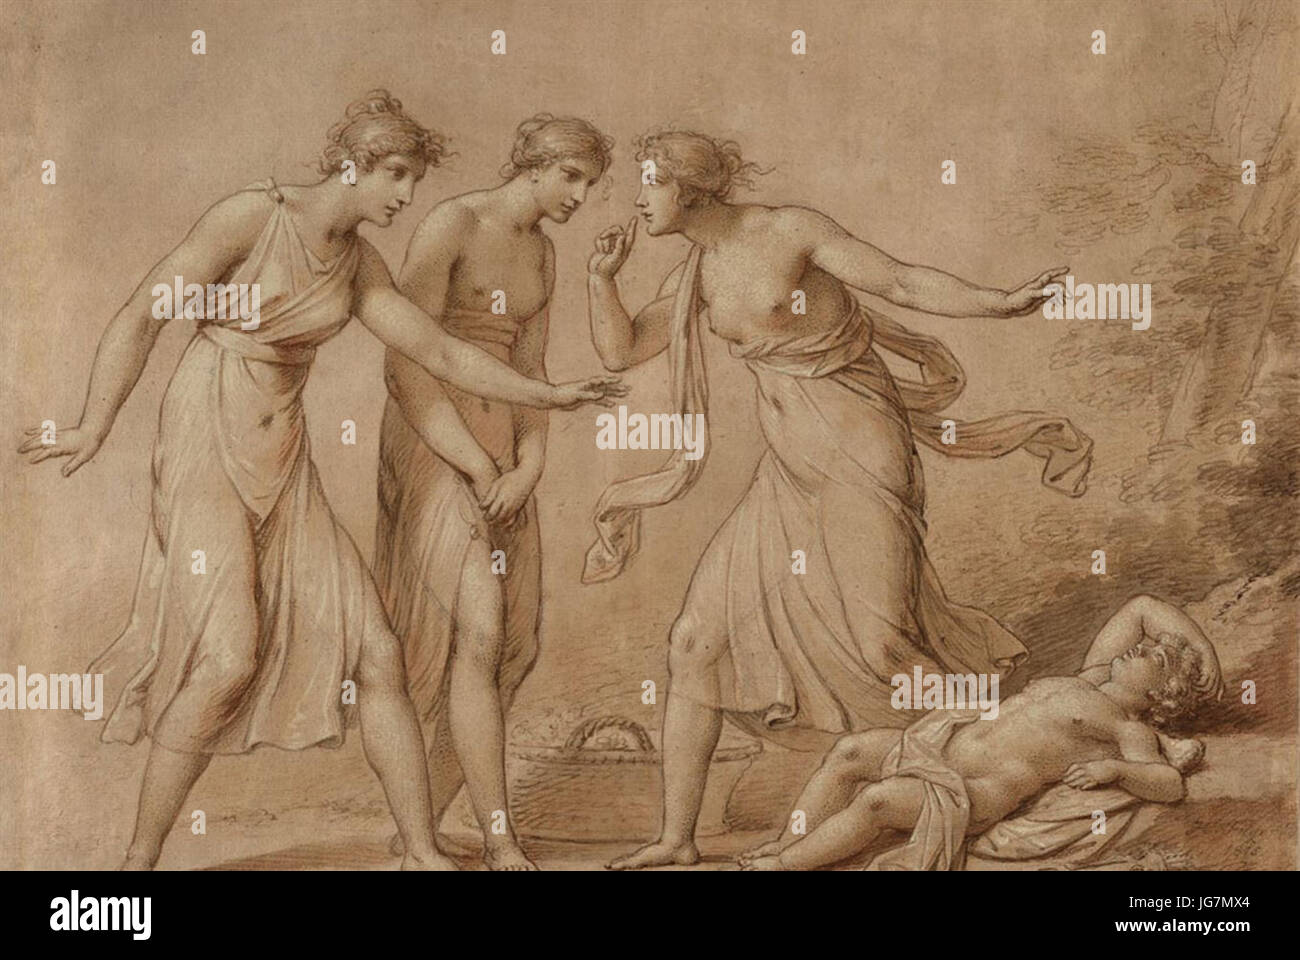 The Three Graces Find Amor by Heinrich Friedrich Füger, 1815, drawing Stock Photo